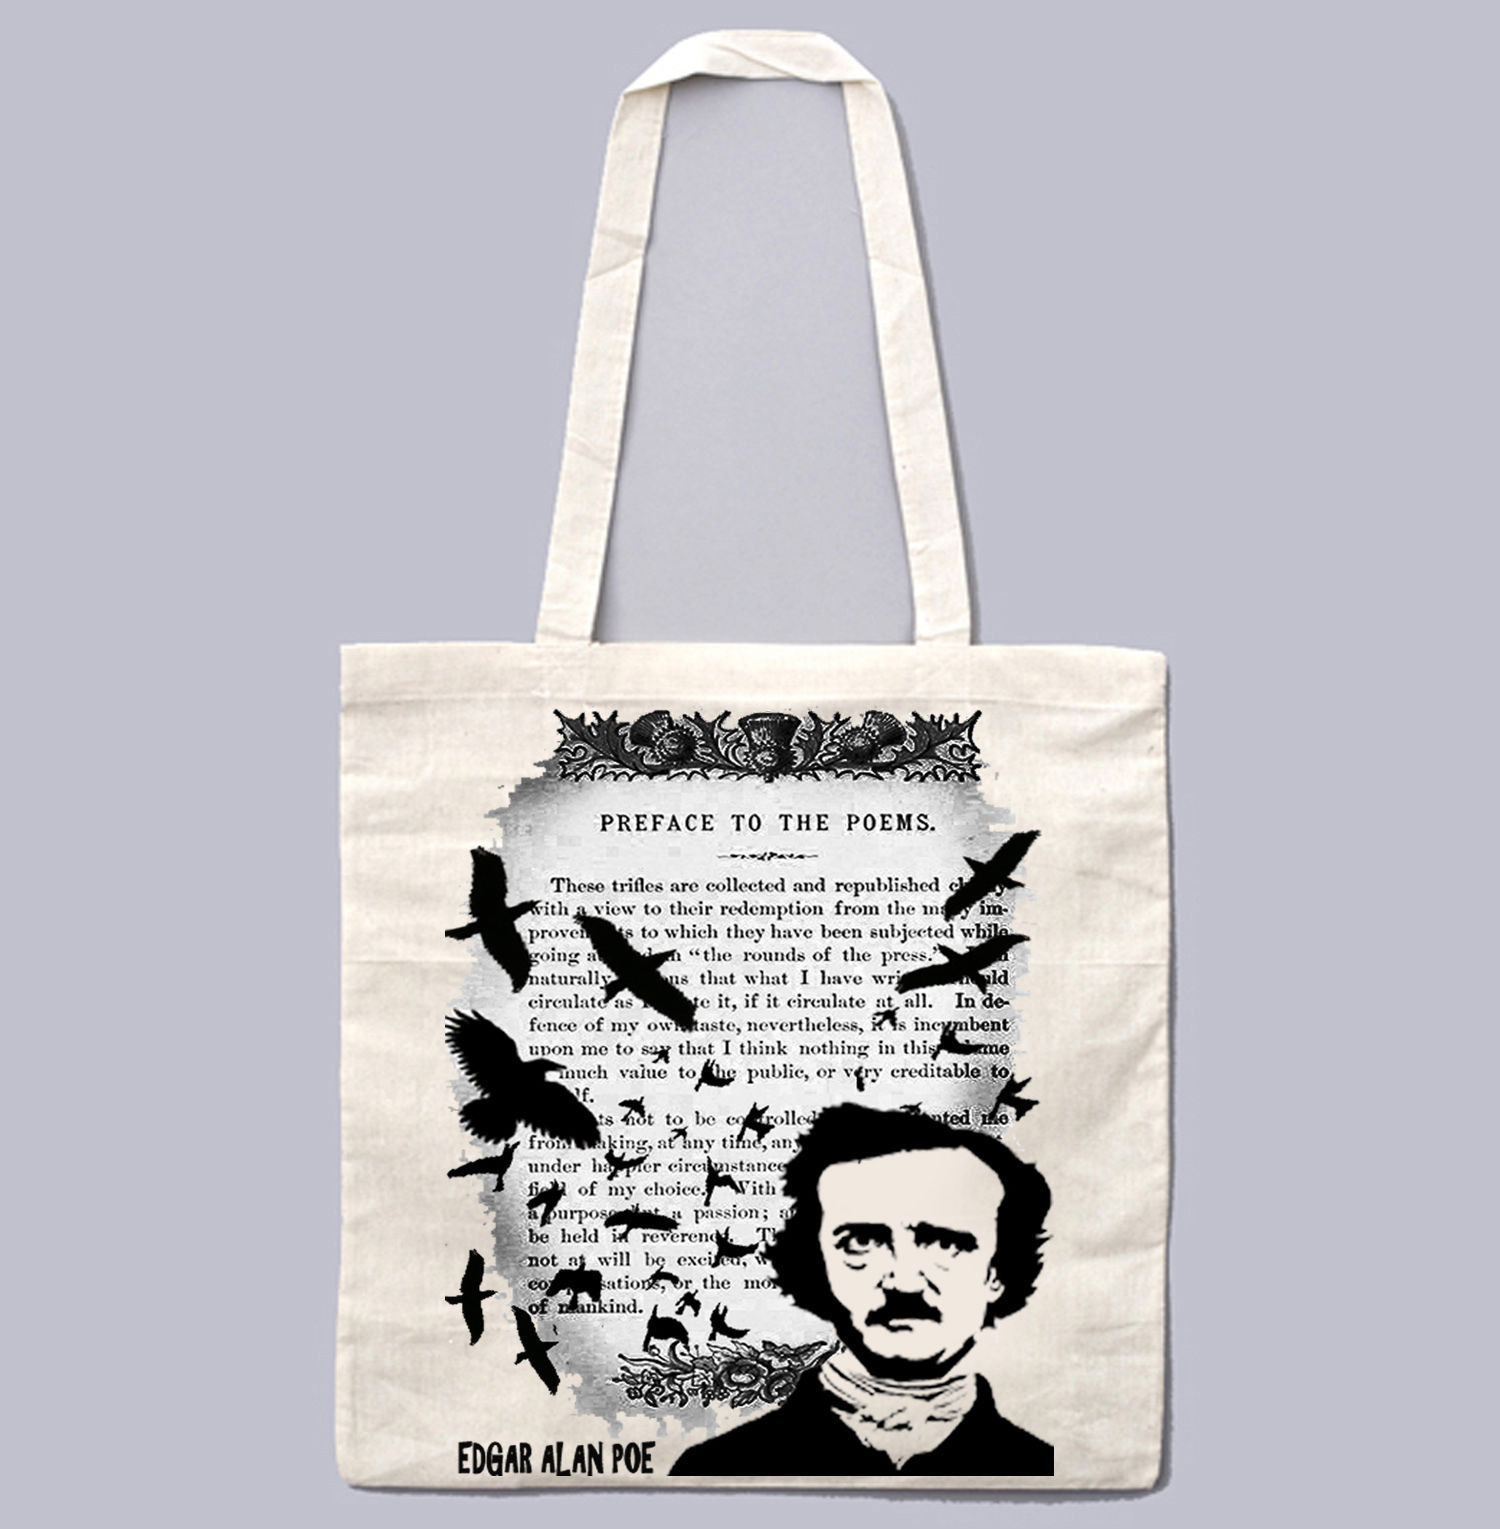 EDGAR ALAN POE POEMS - NEW AMAZING GRAPHIC WHITE HAND BAG/TOTE BAG